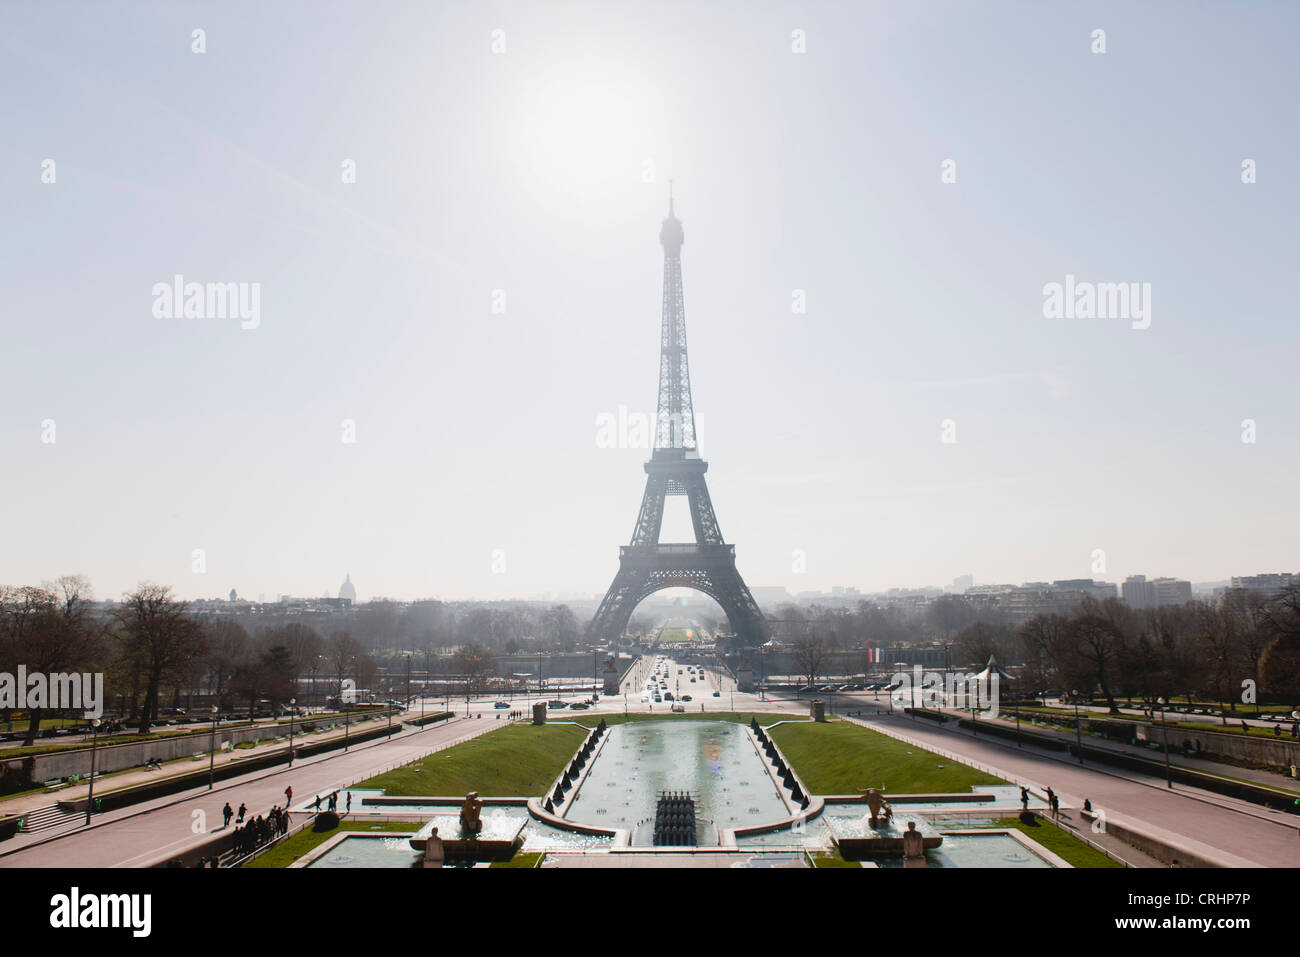 Eiffel Tower viewed from Champ de Mars, Paris, France - Stock Image